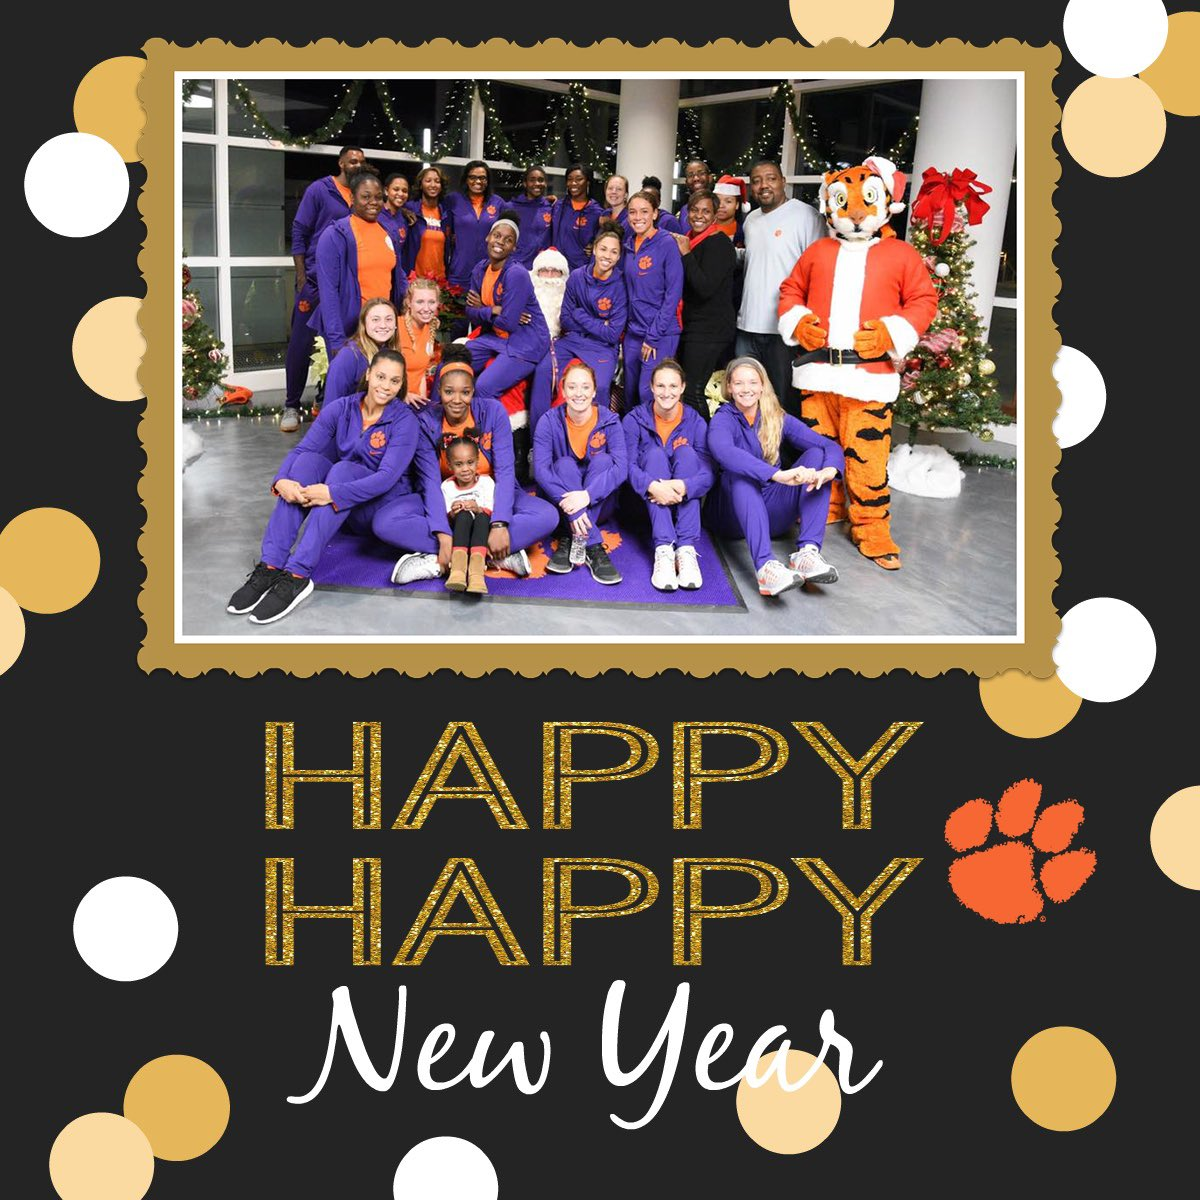 Happy New Year from the #ClemsonWBB players & staff! We hope everyone has a blessed & wonderful 2017! #ClemsonFamily https://t.co/eKGpkcEqXv